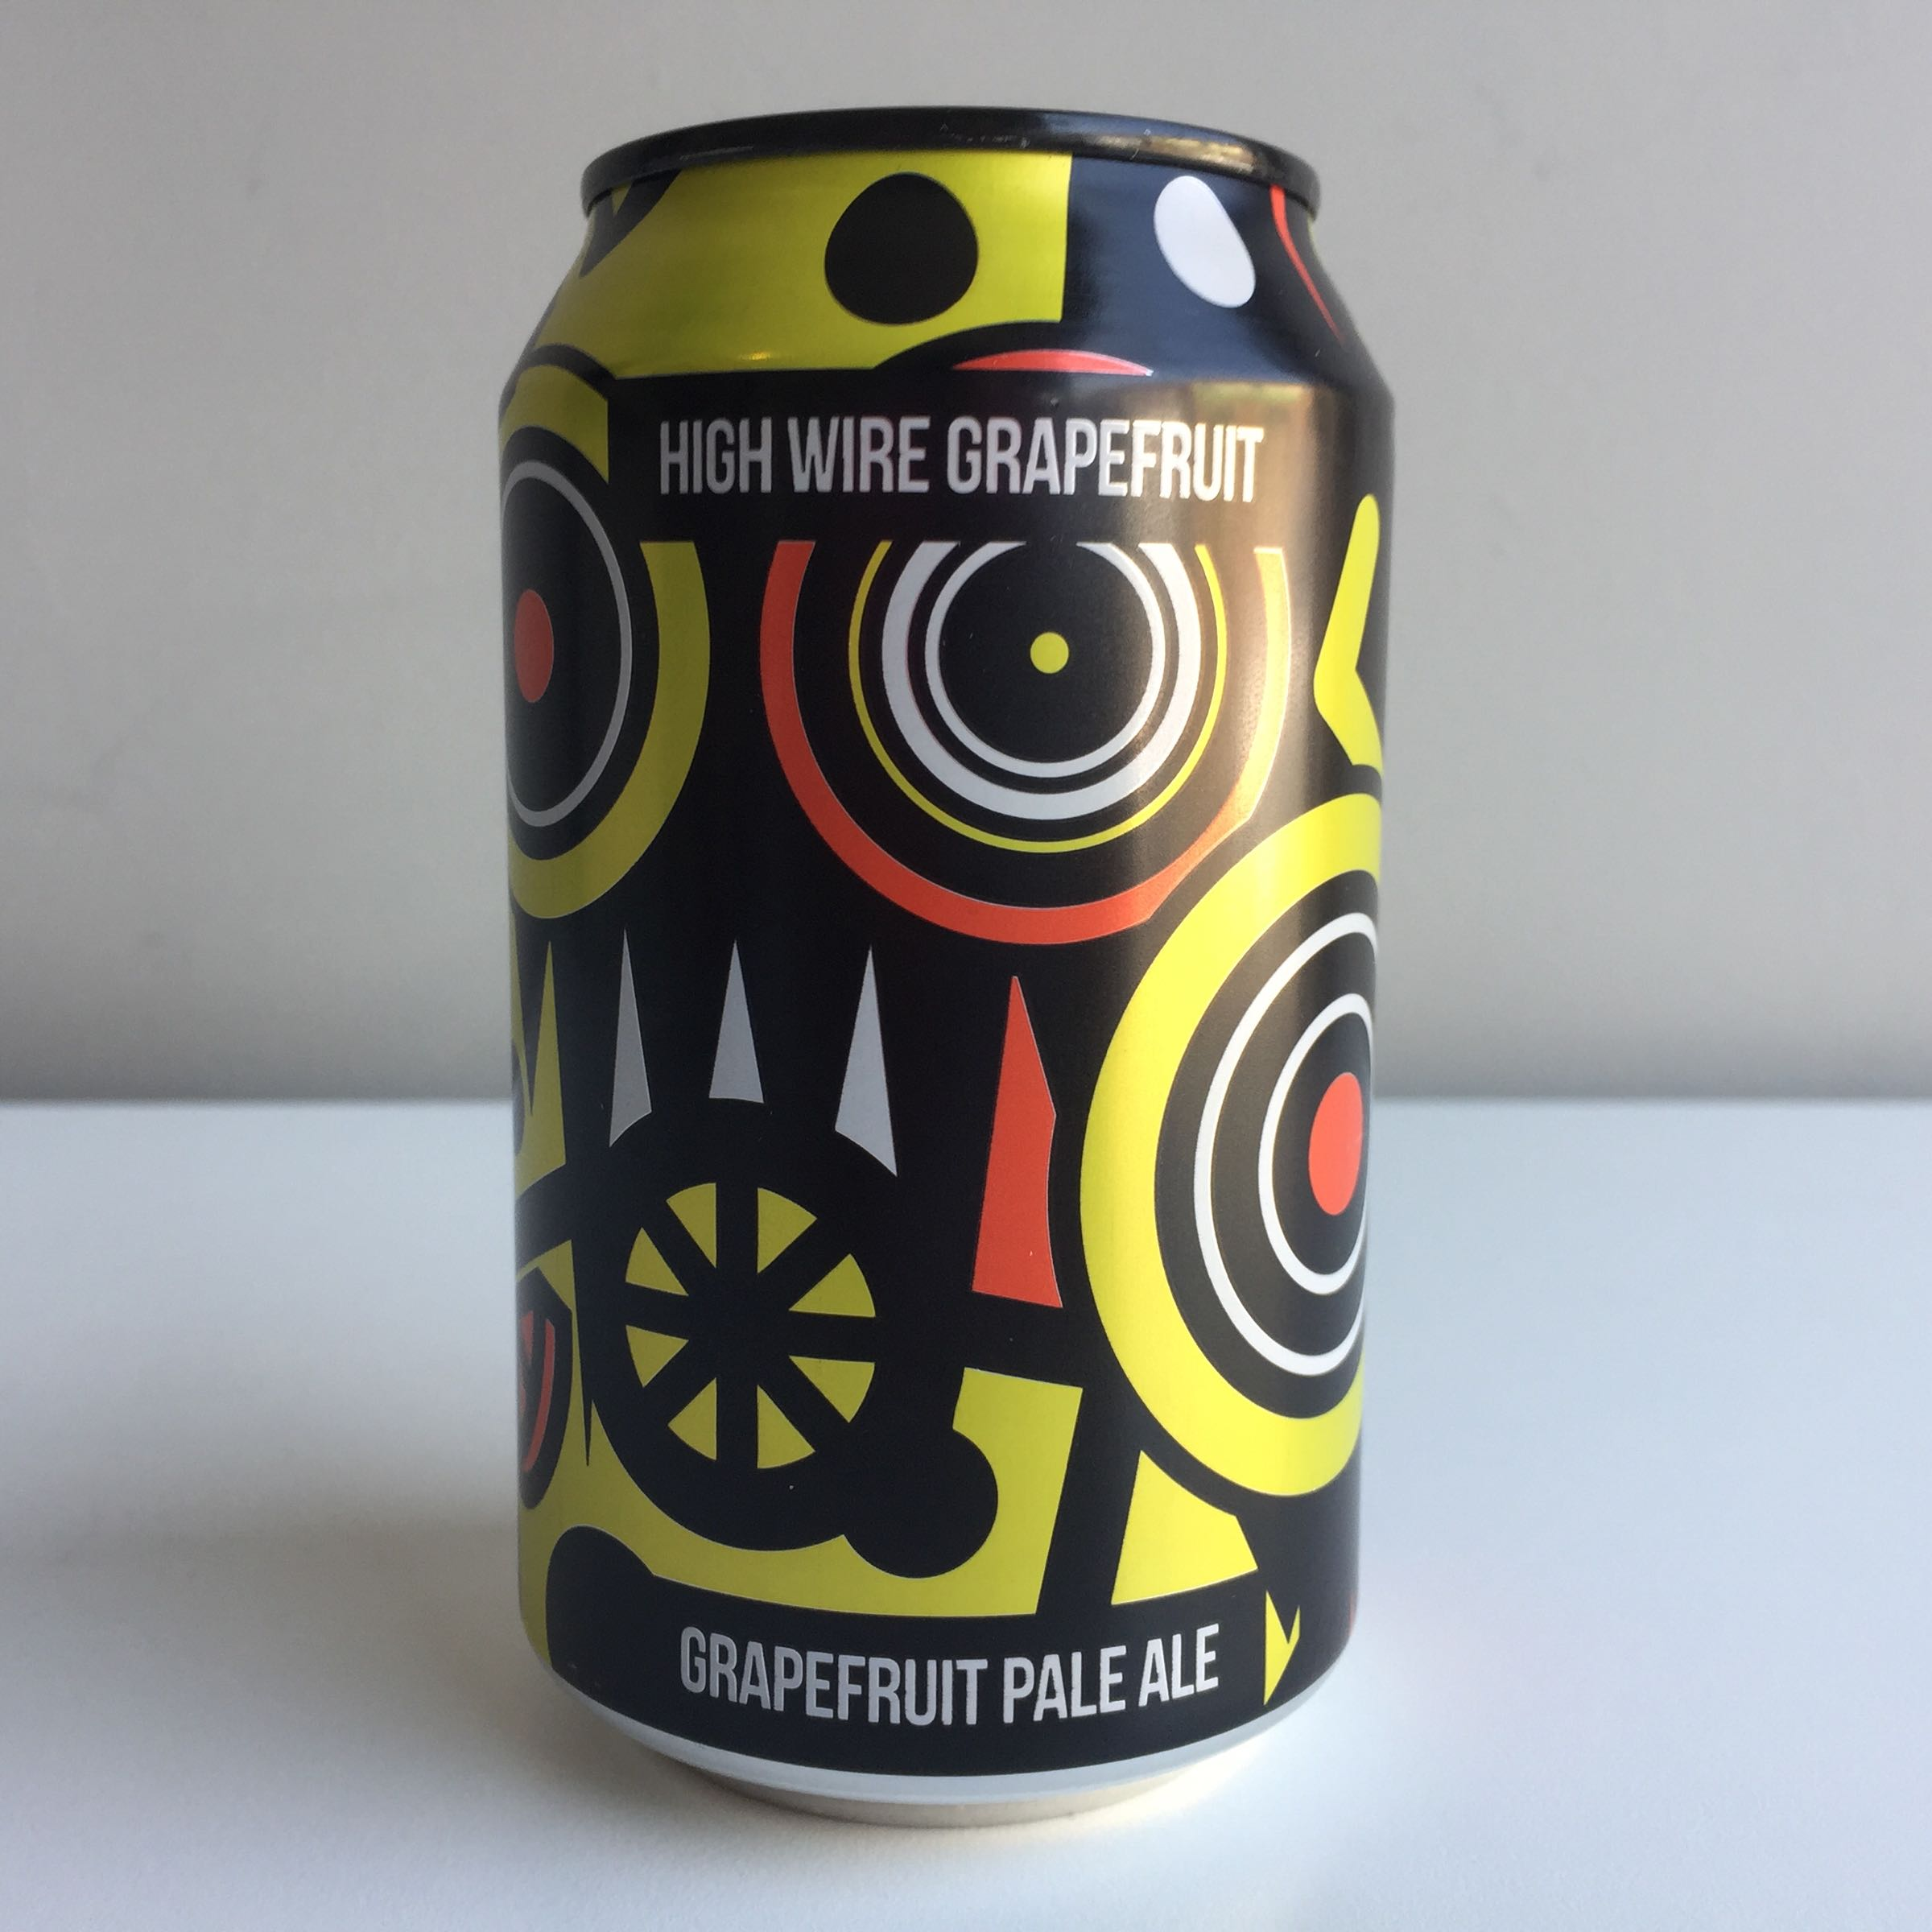 Magic Rock Brewing 'High Wire Grapefruit' Grapefruit Pale Ale 330ml 5.5% ABV